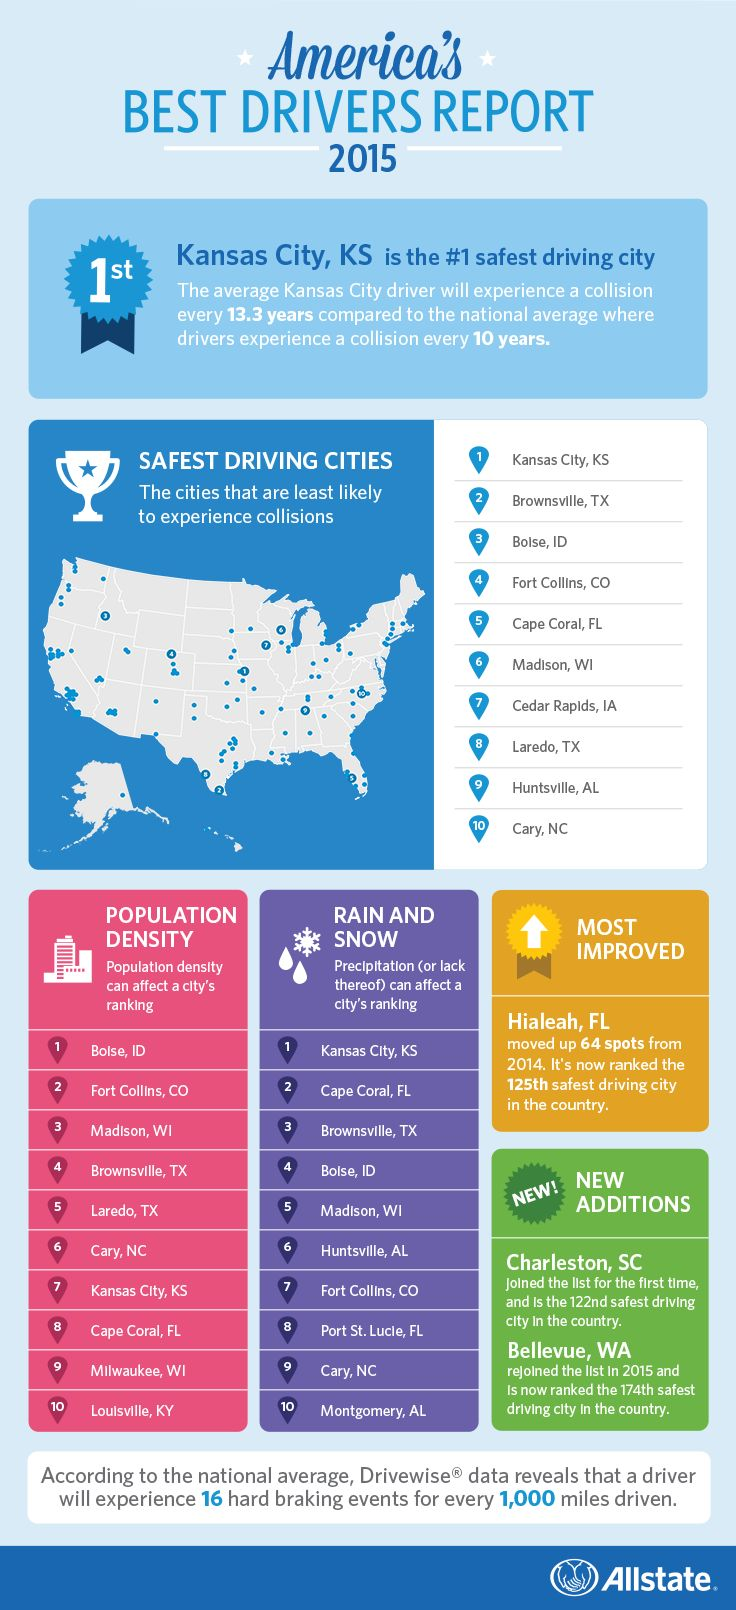 allstate insurance add car  82 best For Your Car images on Pinterest | Car insurance, Motorbikes ...